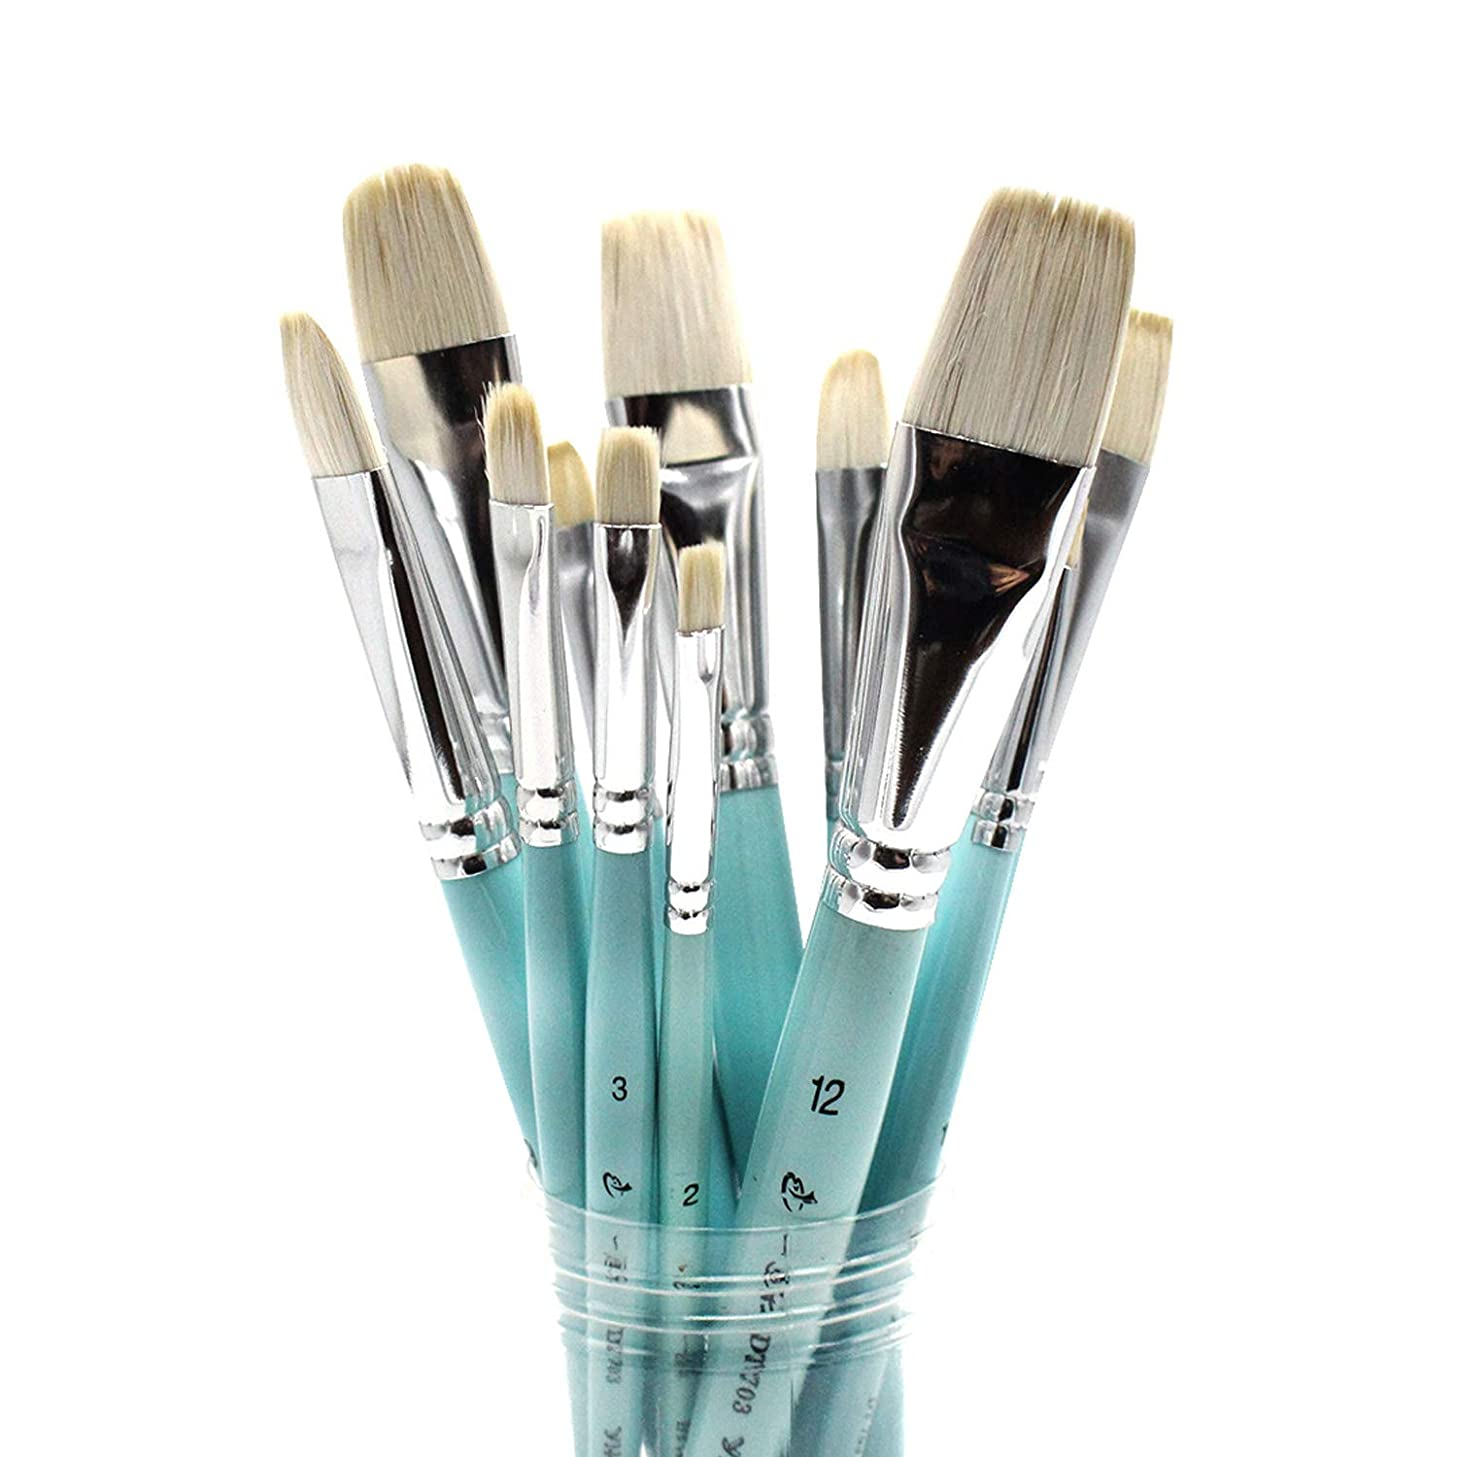 Mitini Acrylic Paint Brush Set, 6Pcs Filbert Flat Goat Hair Painting Brushes for Watercolor Gouache Oil Face and Body Craft Miniatures Painting Professional Art Paintbrushes